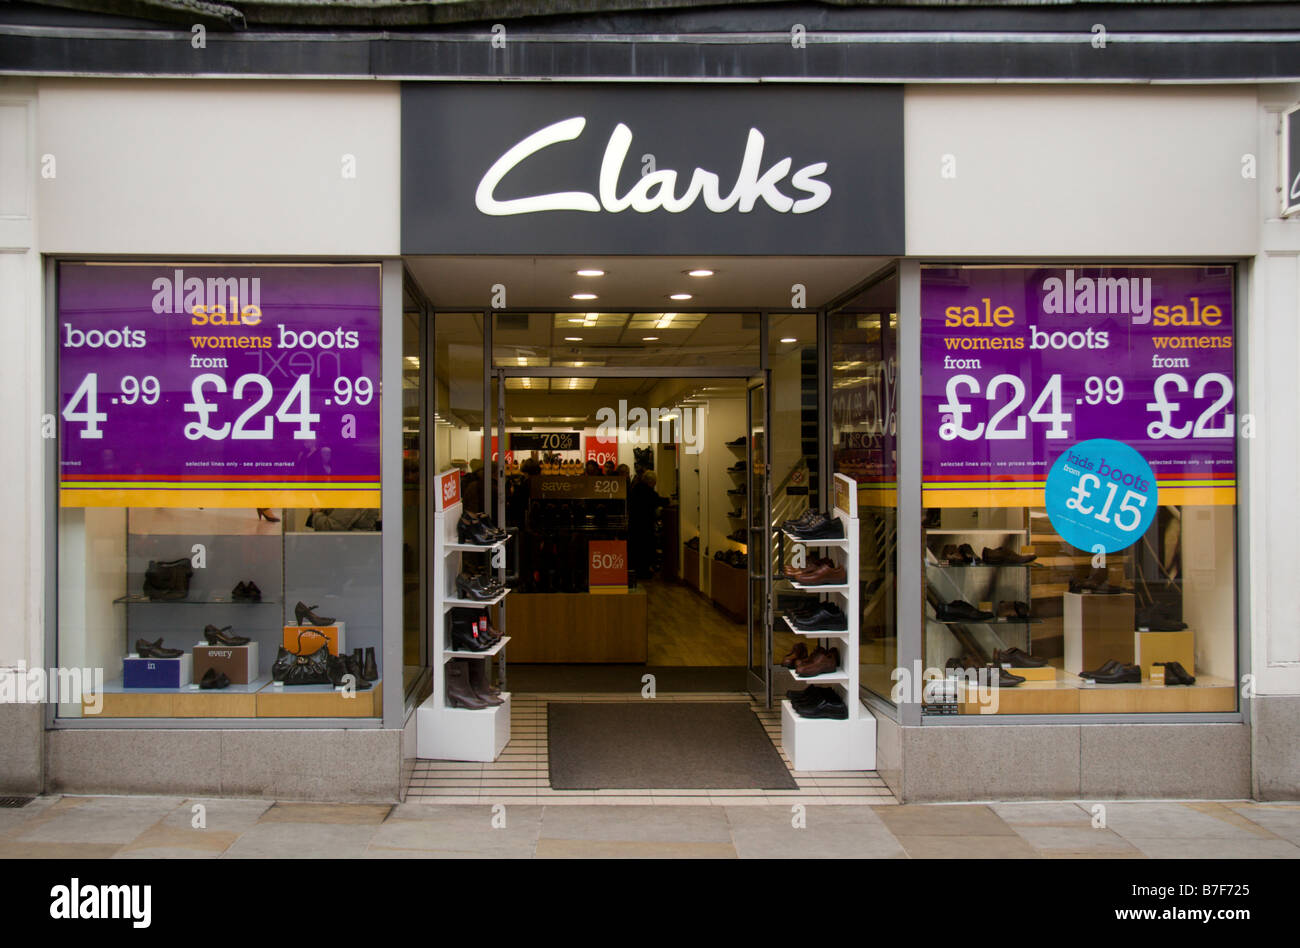 Alamy Clarks Photos Stock Sign amp; Images qqRFOx6w